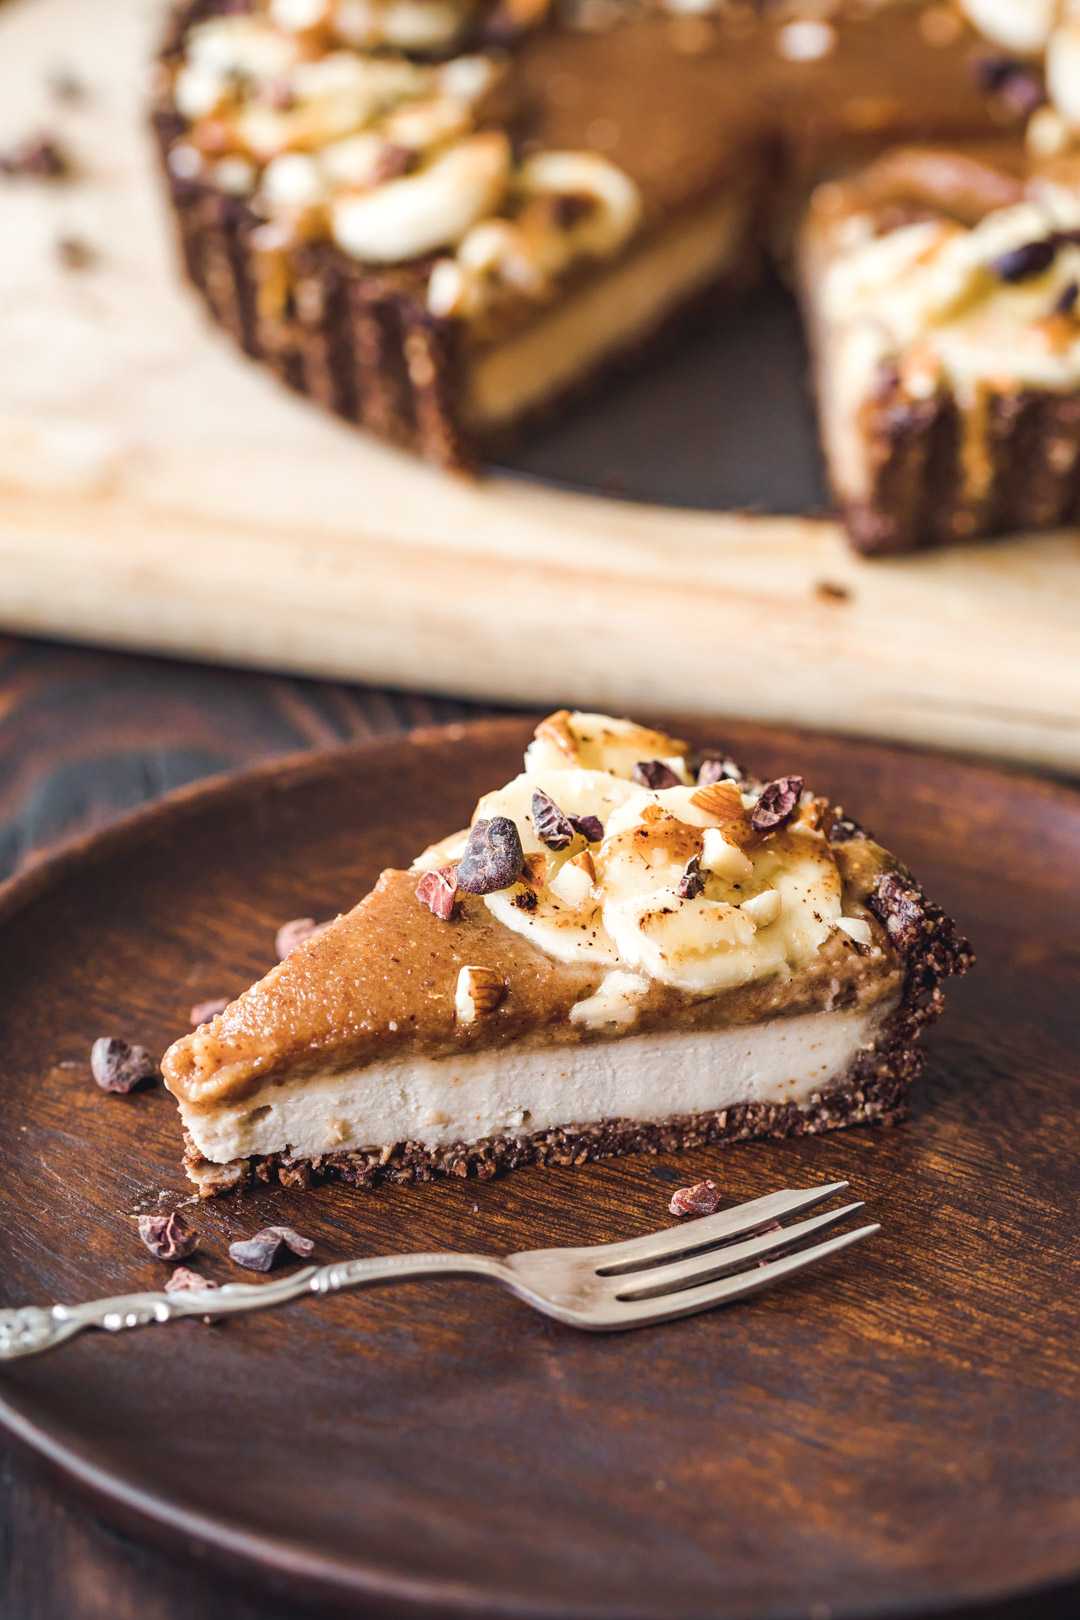 Banana Almond Butter Tart